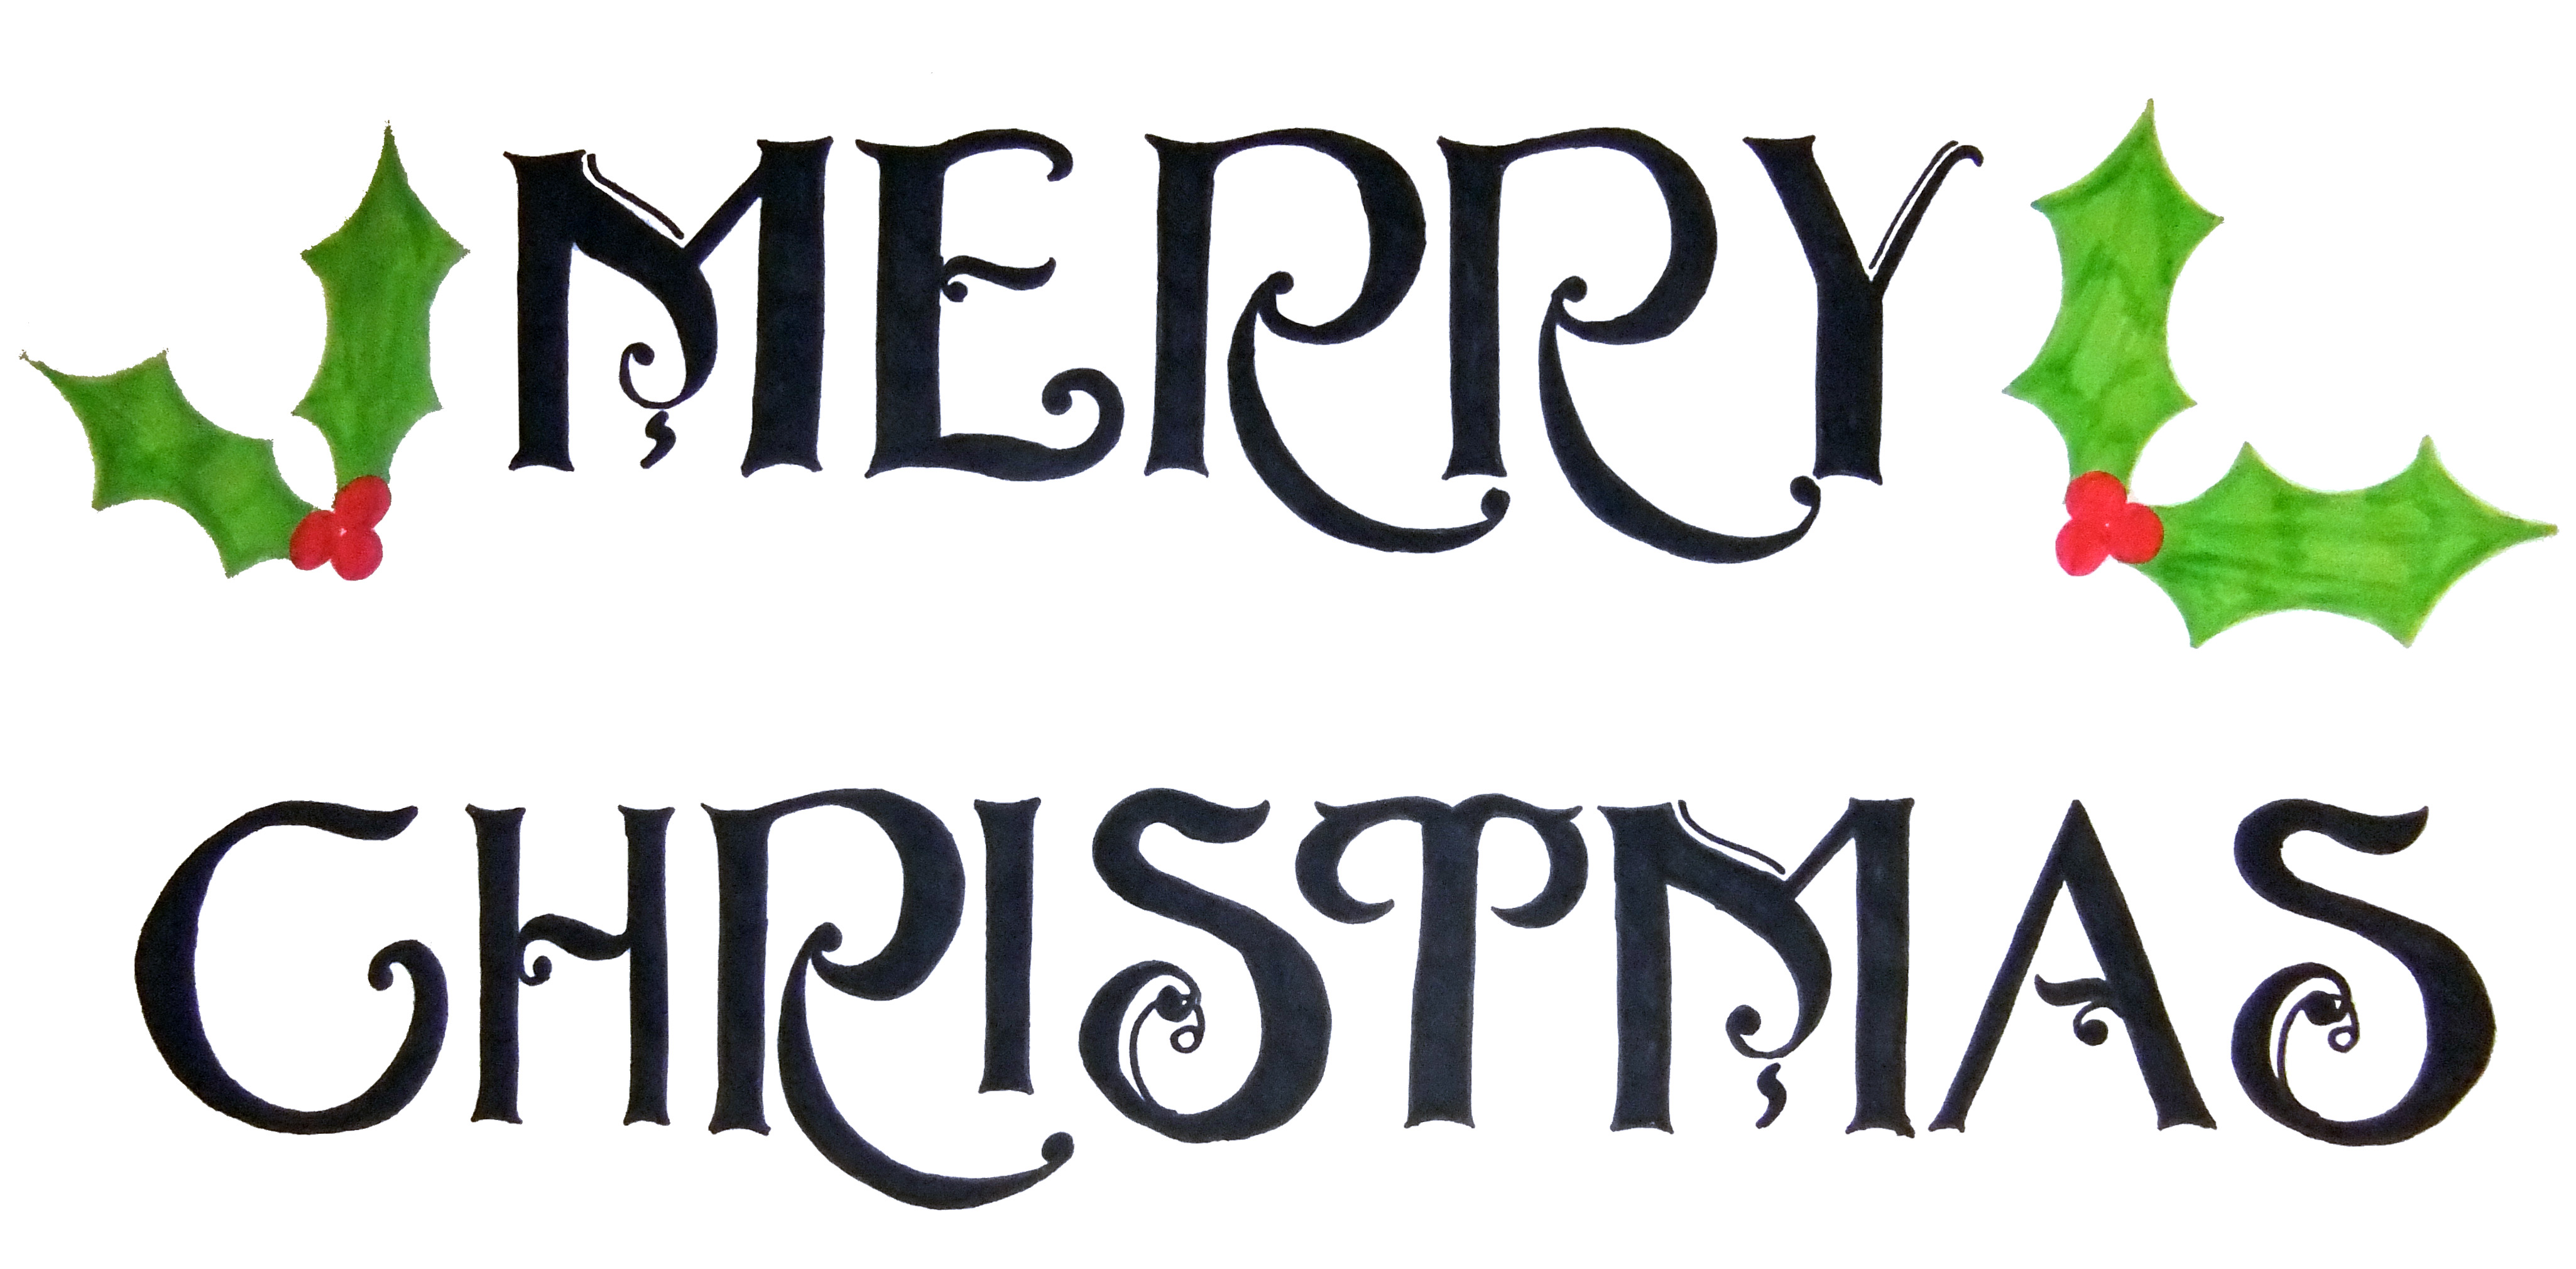 4100x2020 Merry Christmas Clipart Words